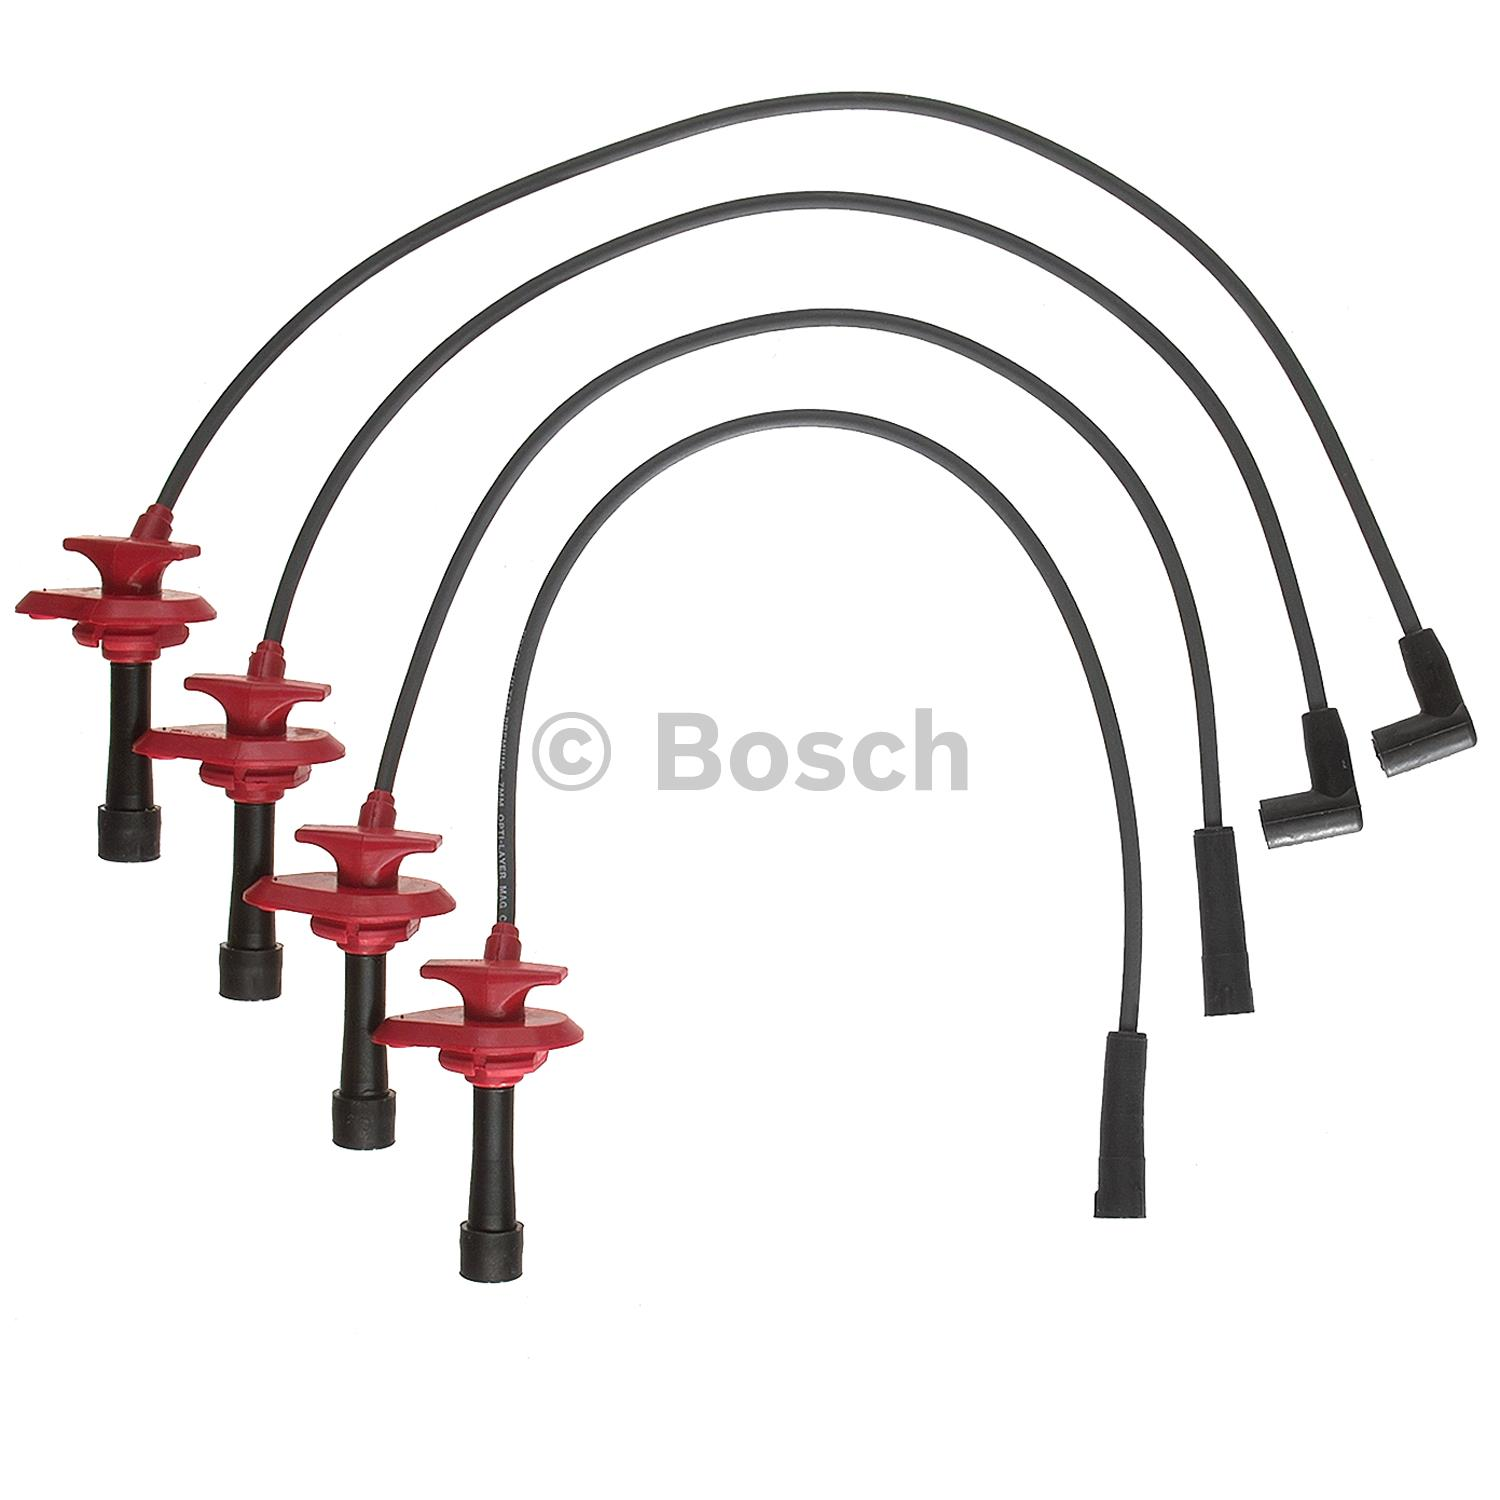 Bosch Snap Lock Terminals Or Oem Style Connectors